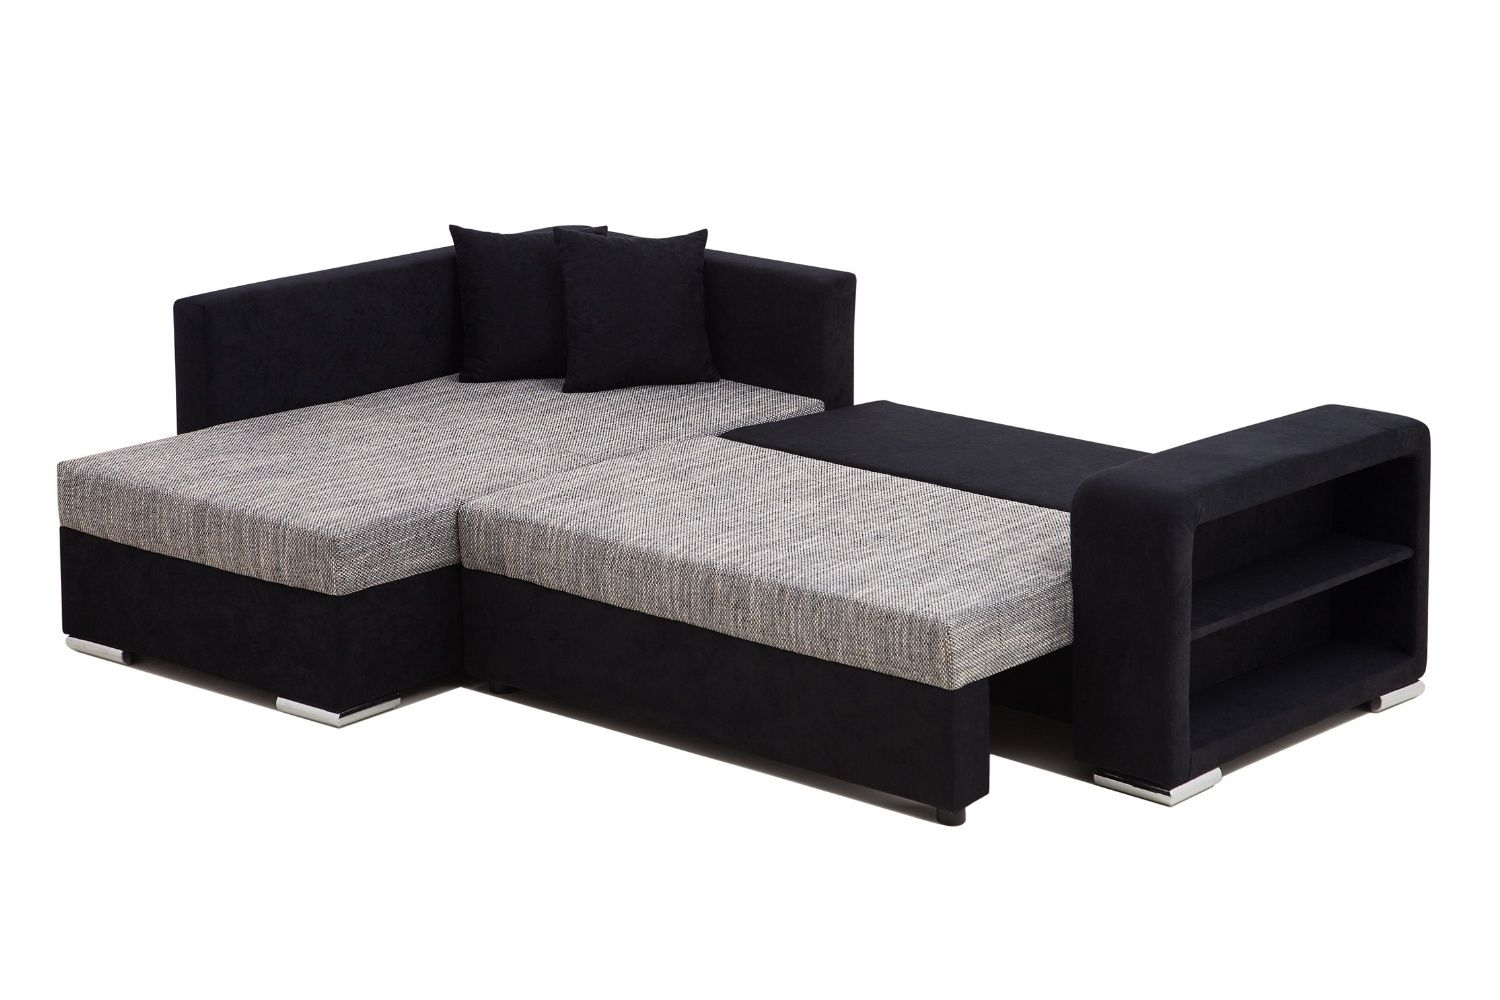 Canape lit tissu convertible hst cpelit hst osk st vente for Canapes lits